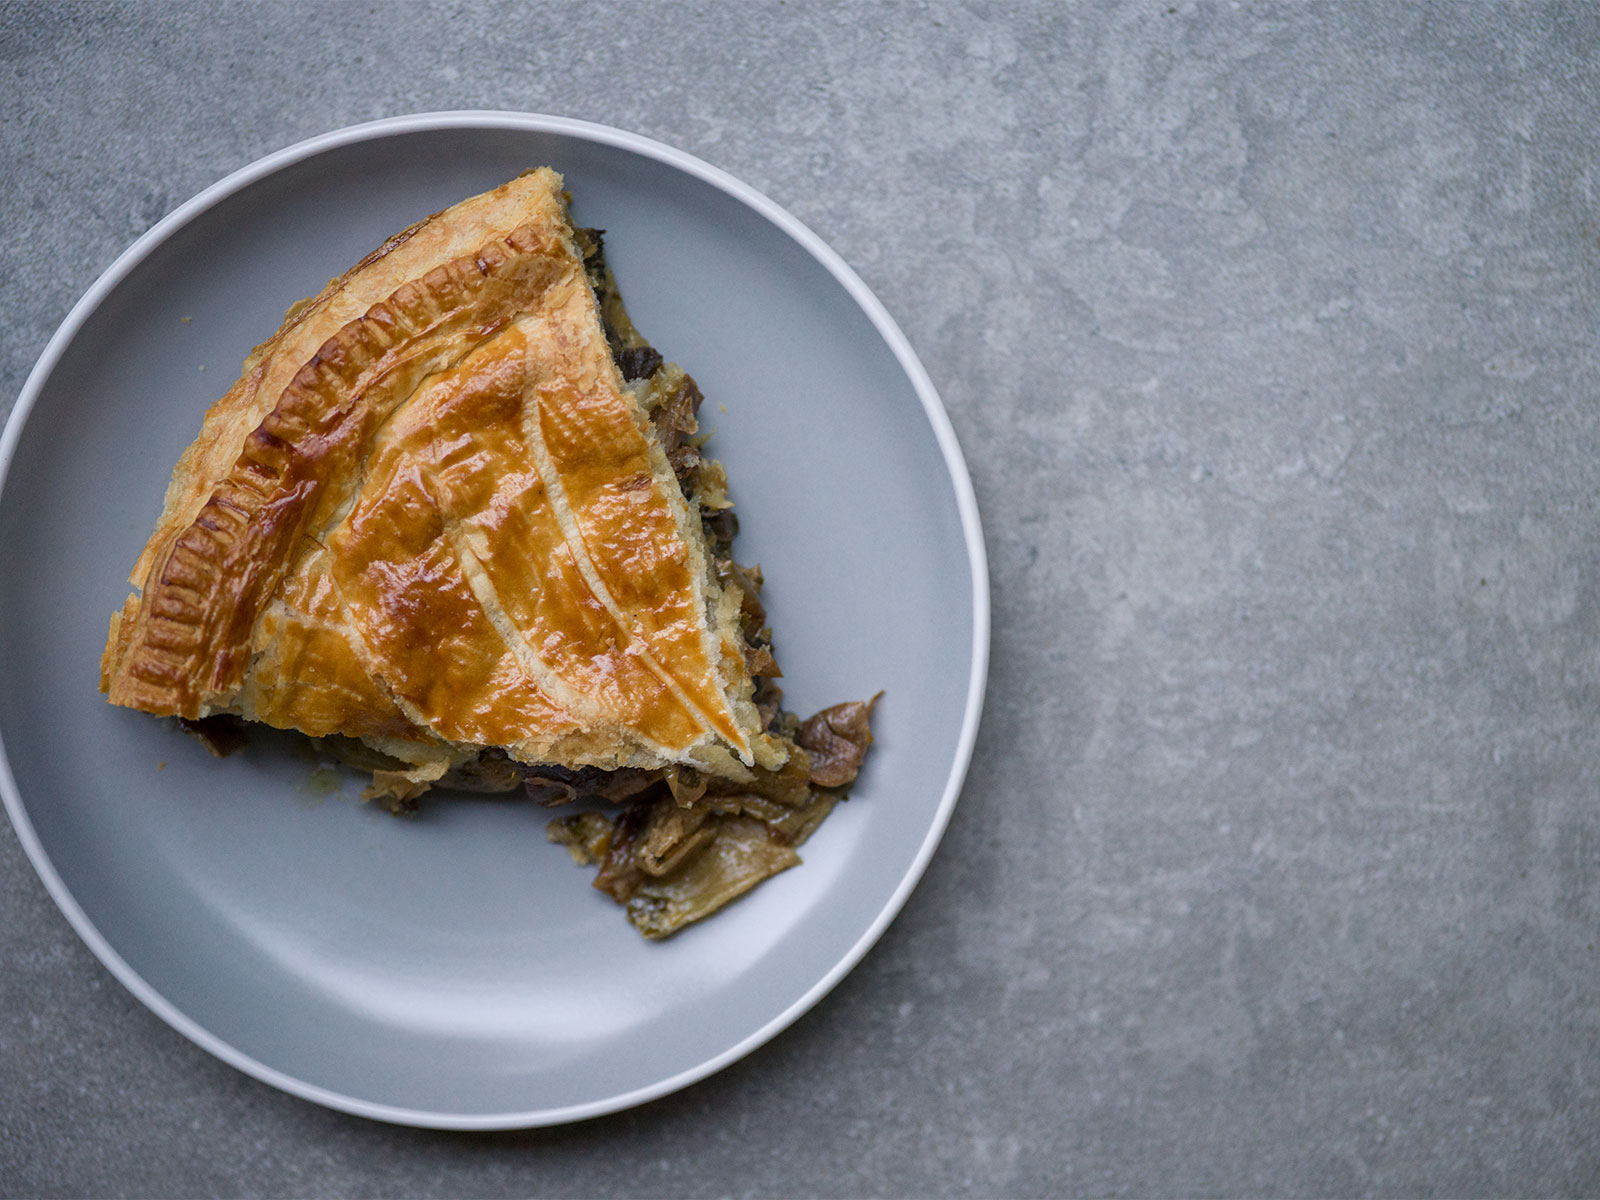 Just one slice | Mixed Mushroom Pithivier